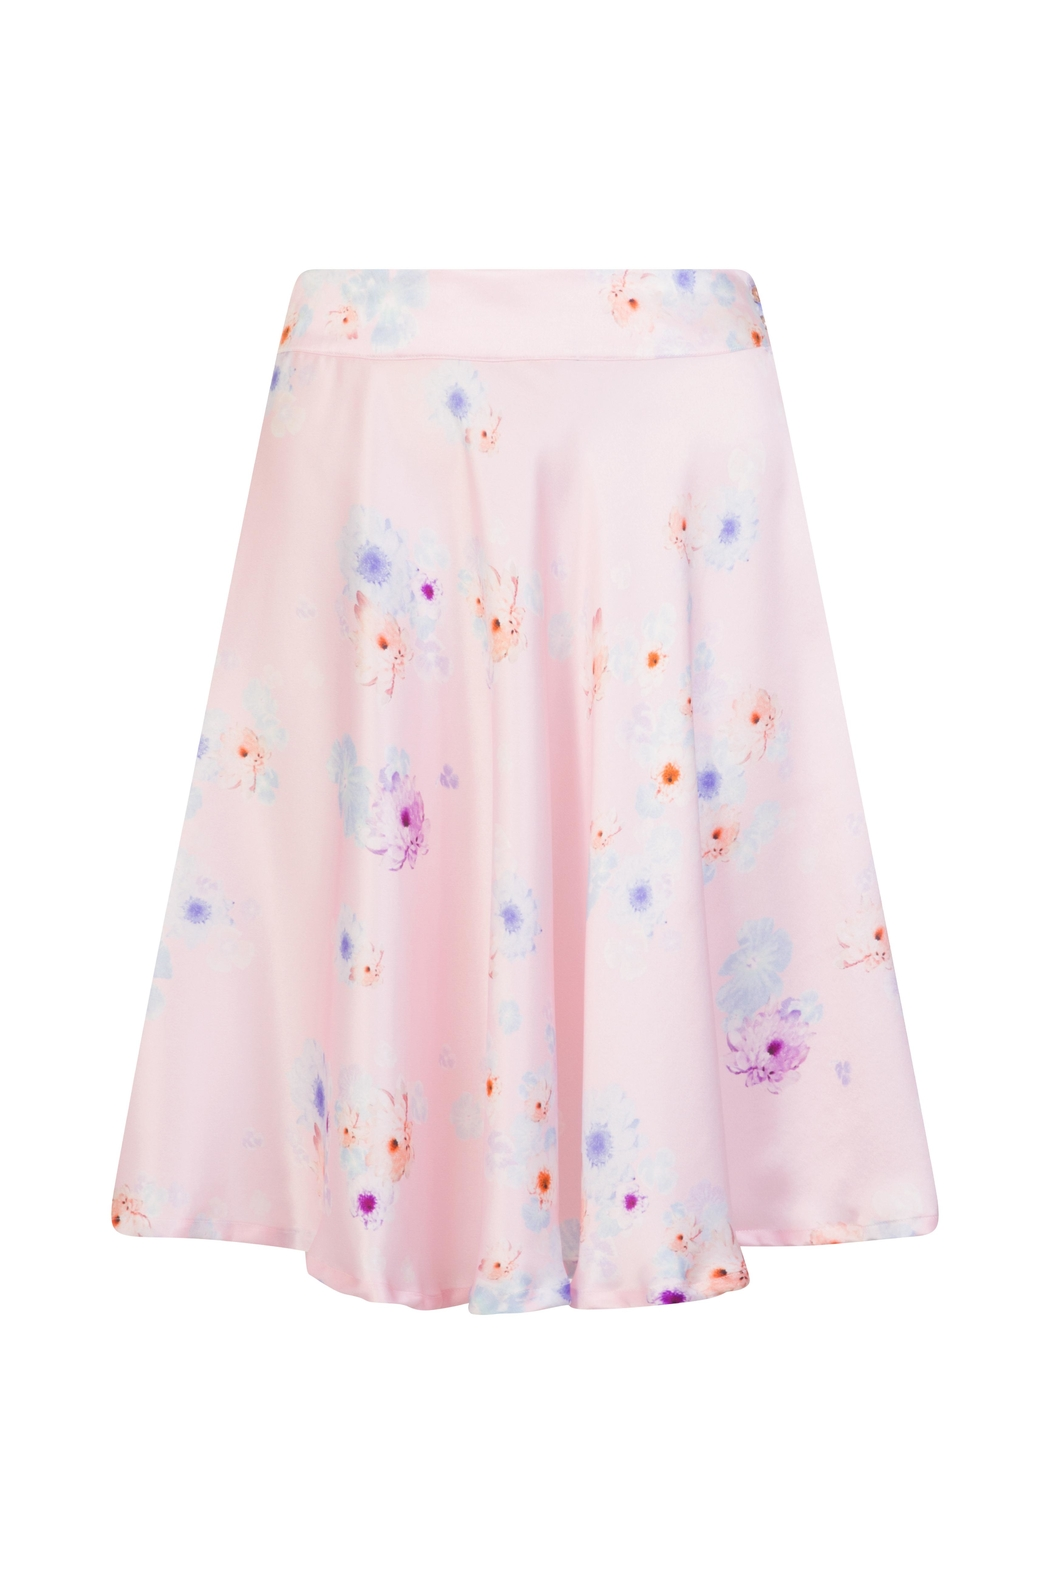 Sophie Cameron Davies Silk Floral Skirt - Front Full Image